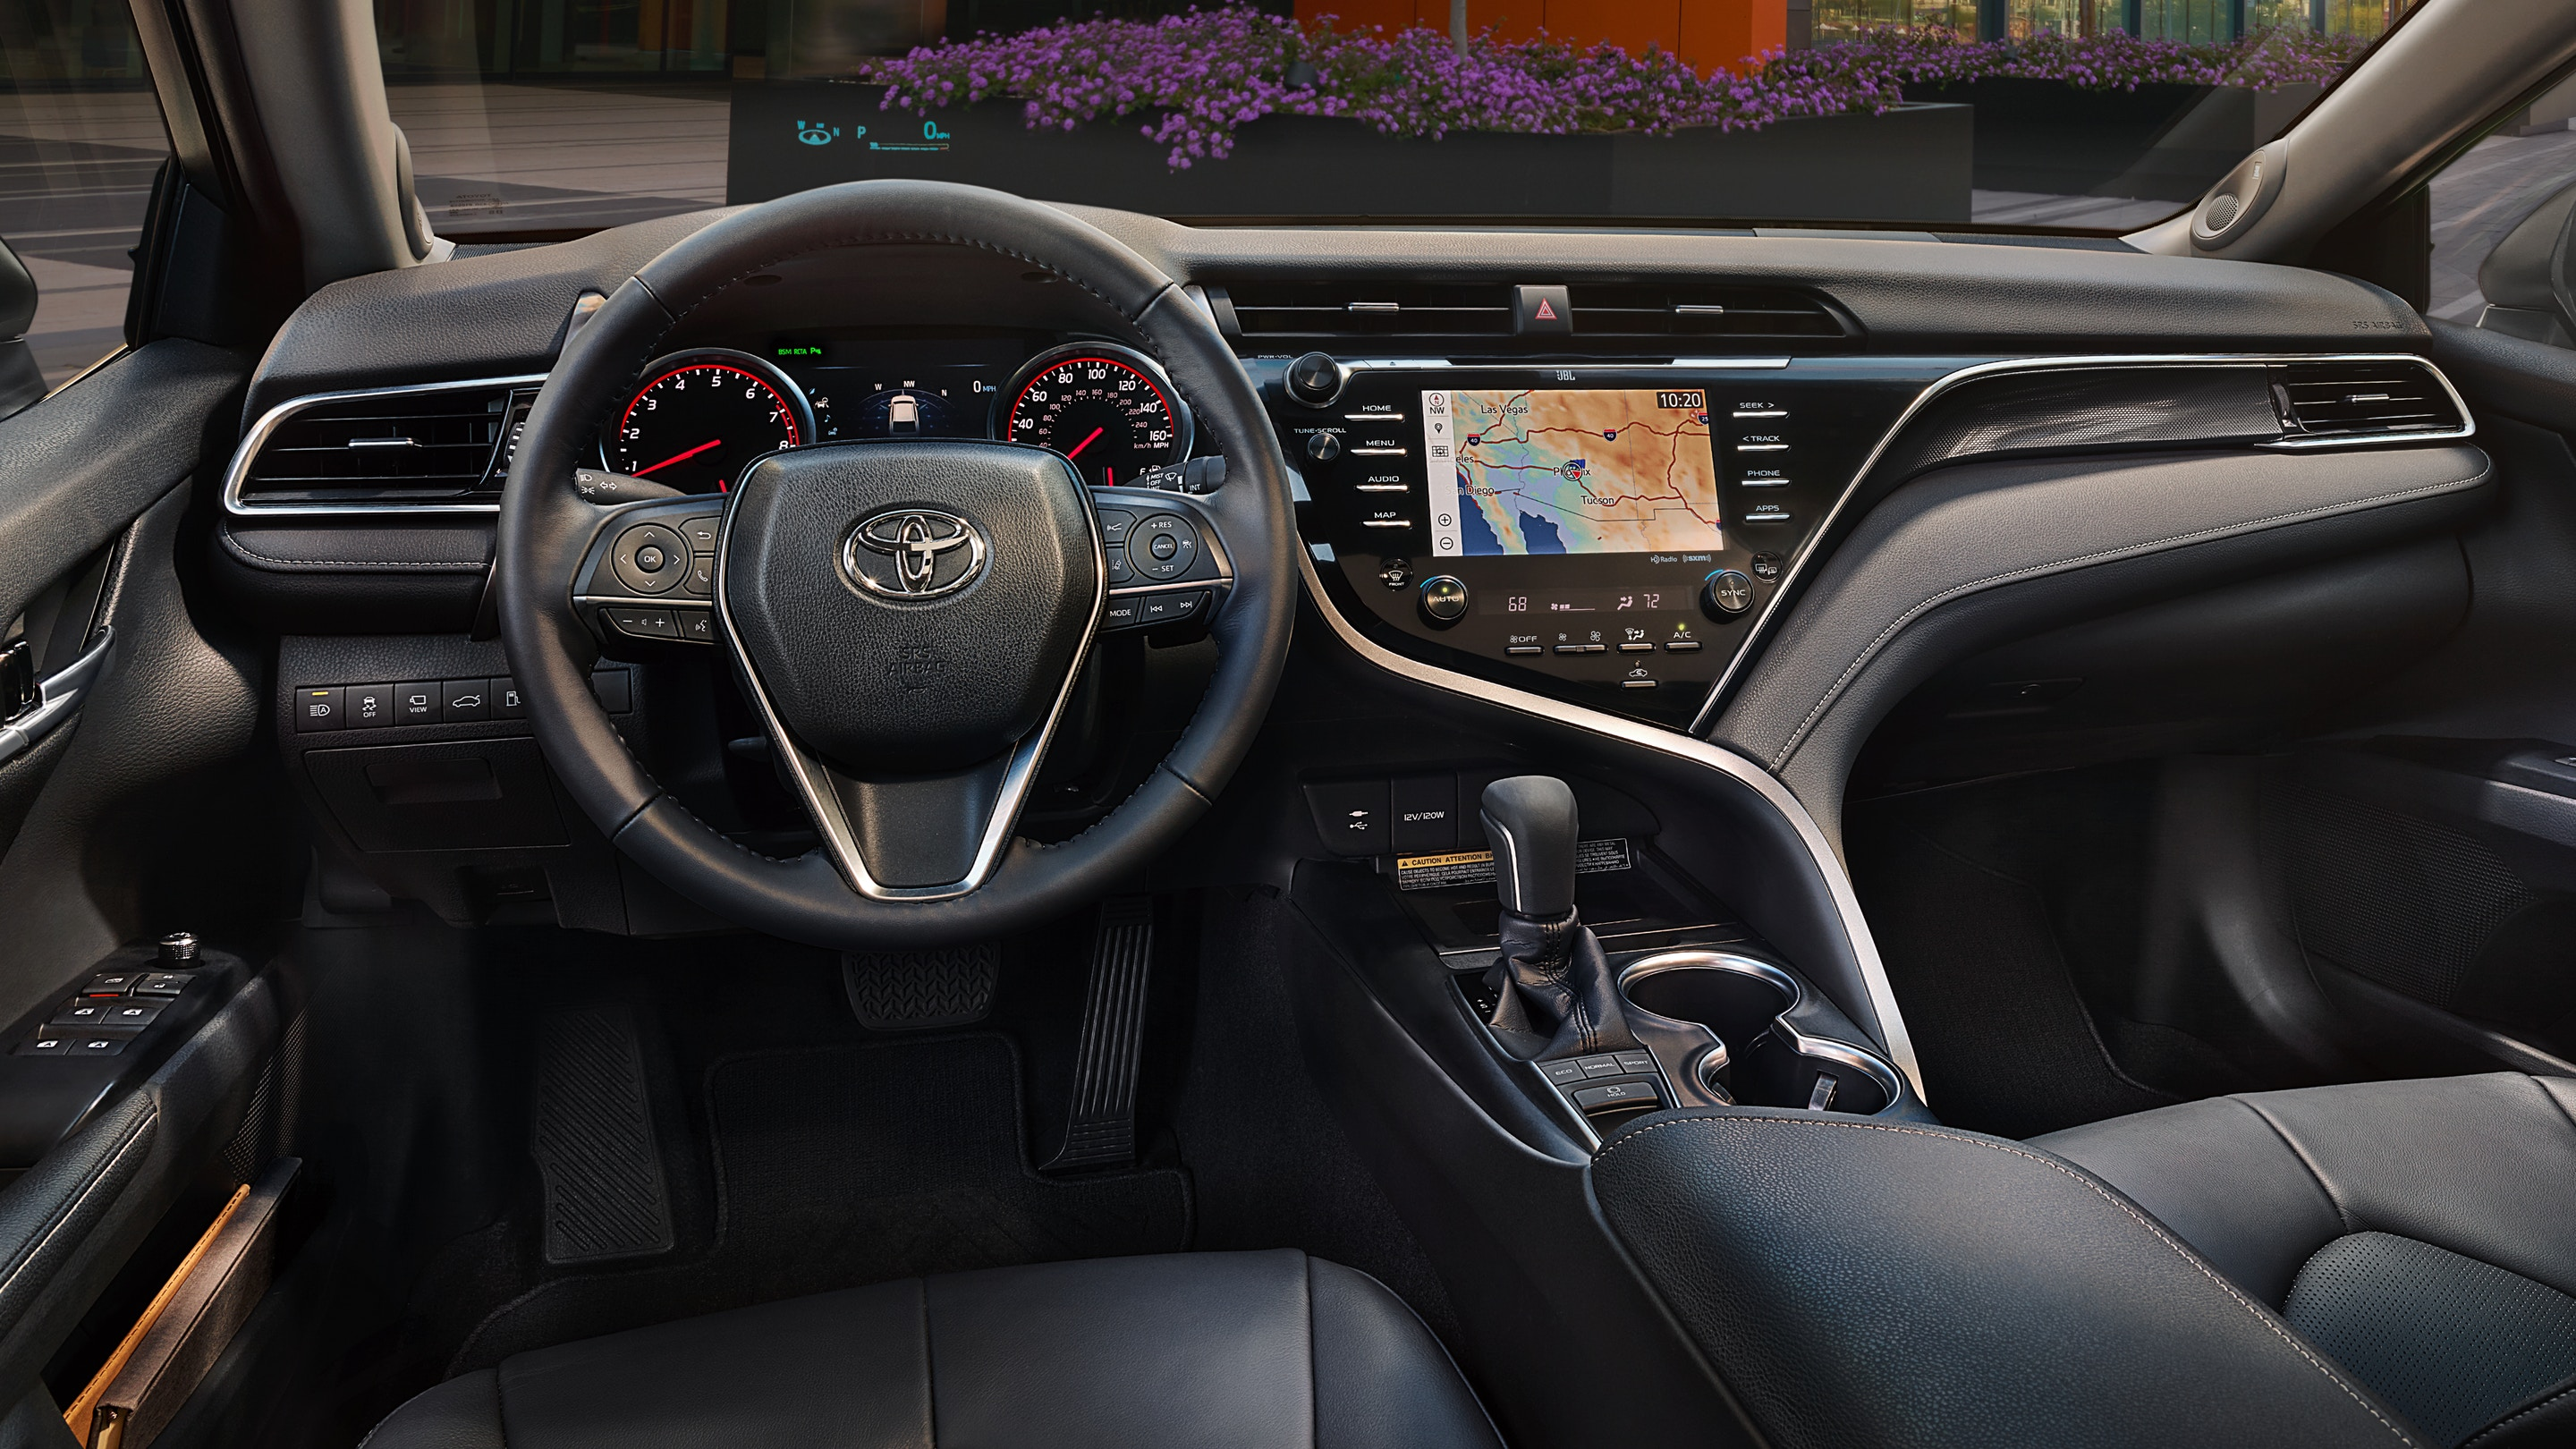 2019 Toyota Camry Financing near Des Moines, IA - Toyota of